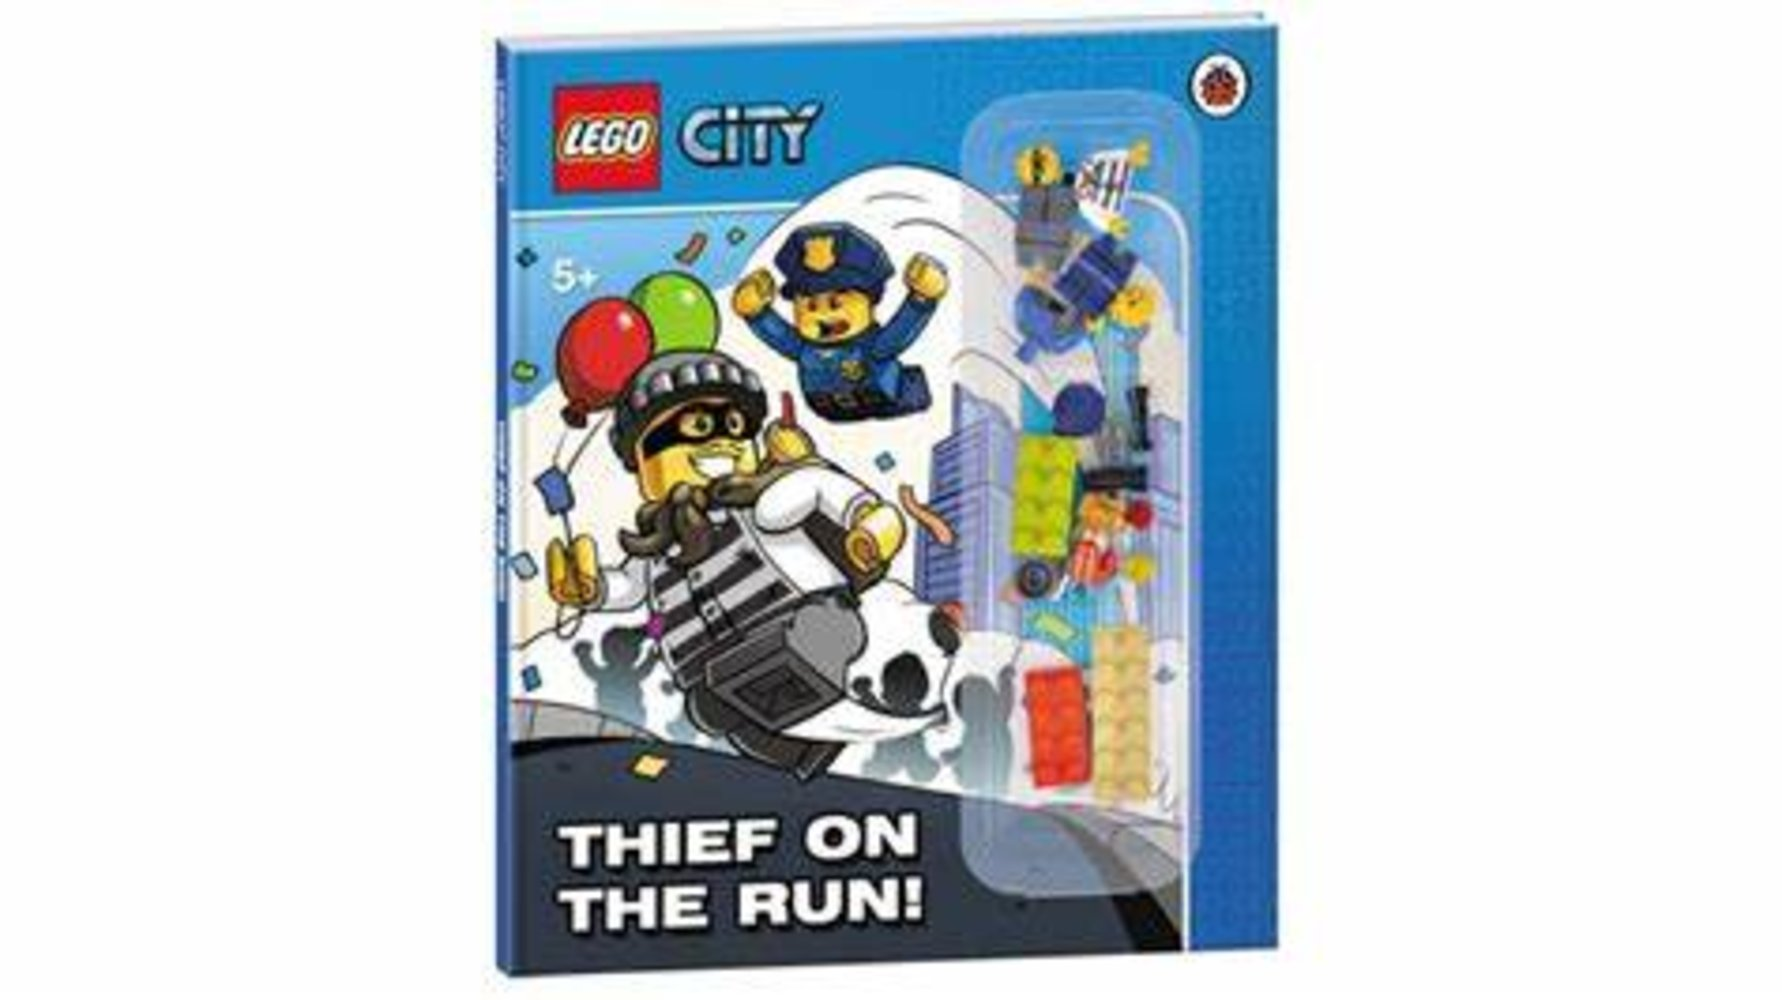 City: Thief on the Run!